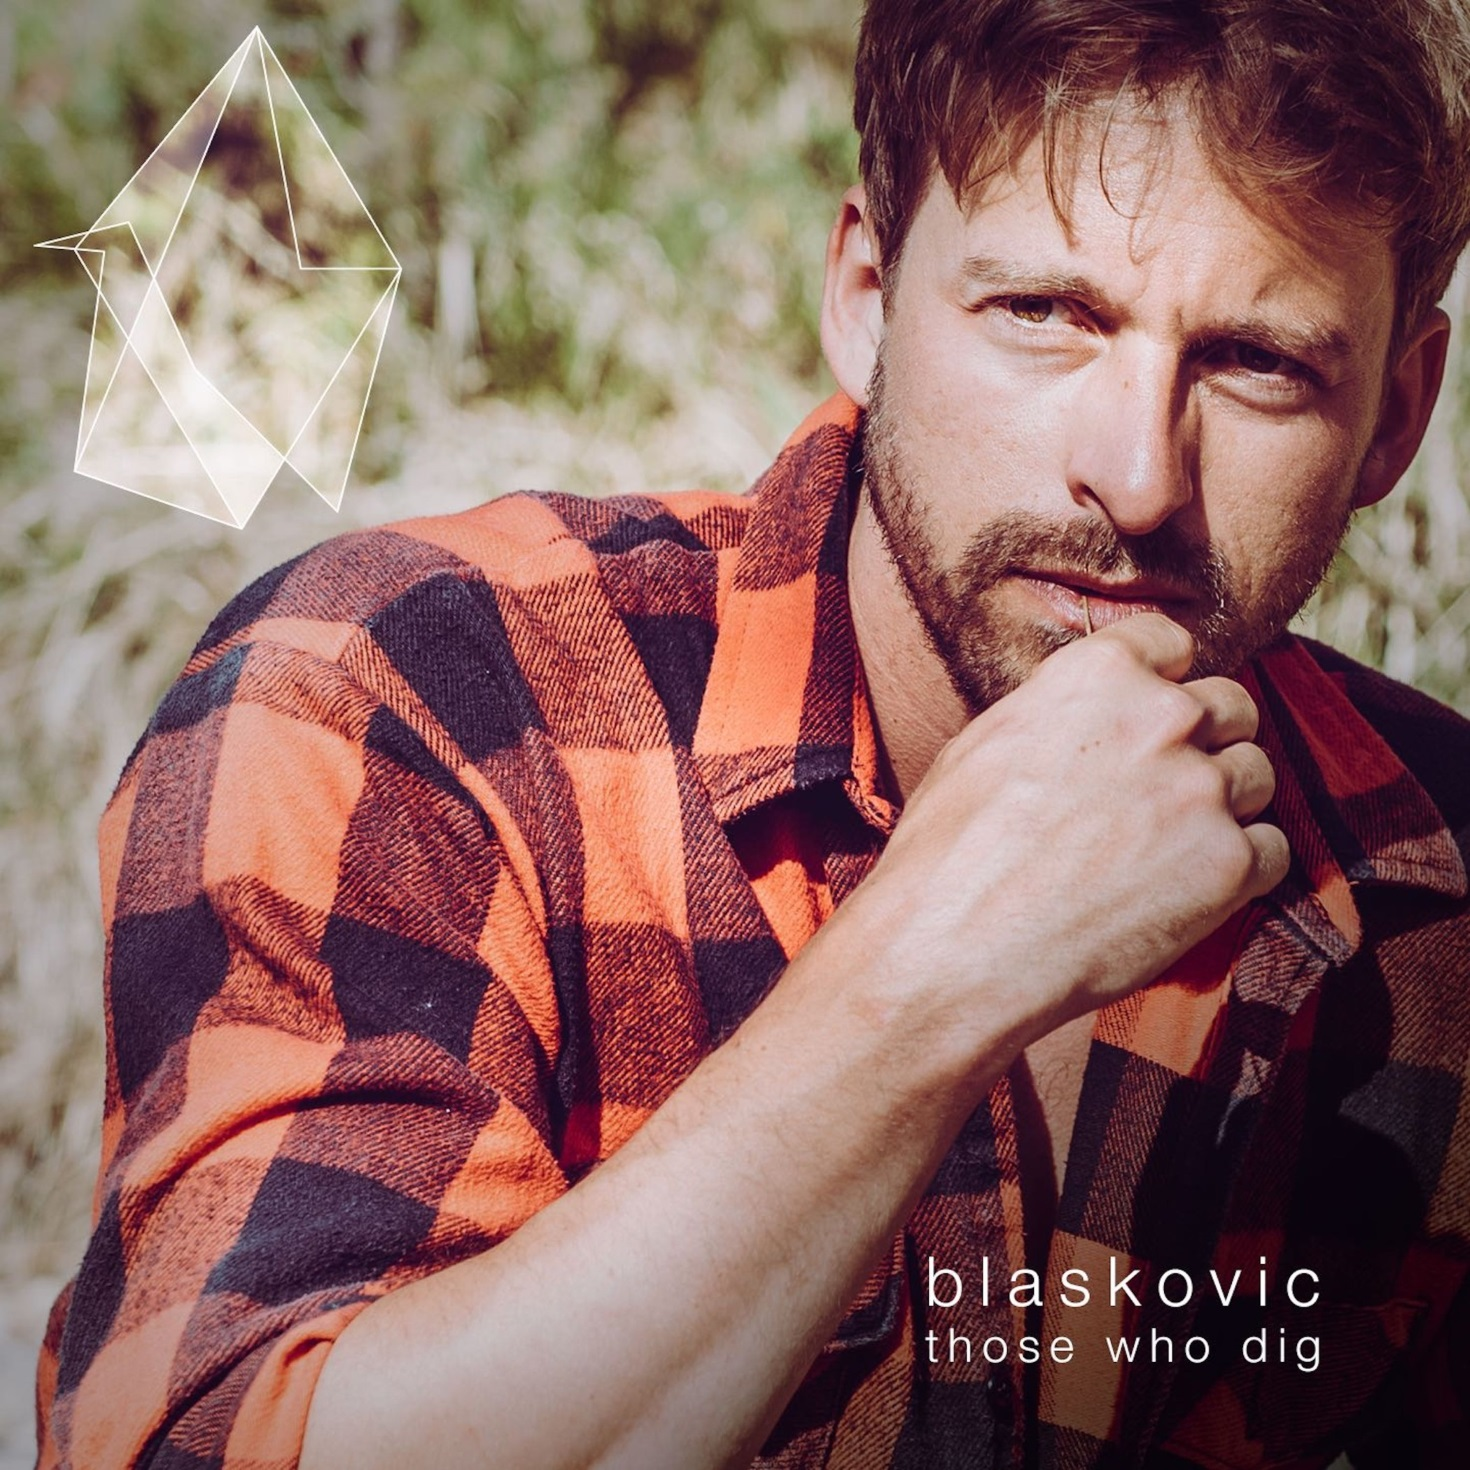 Those Who Dig Ben BLASKOVIC